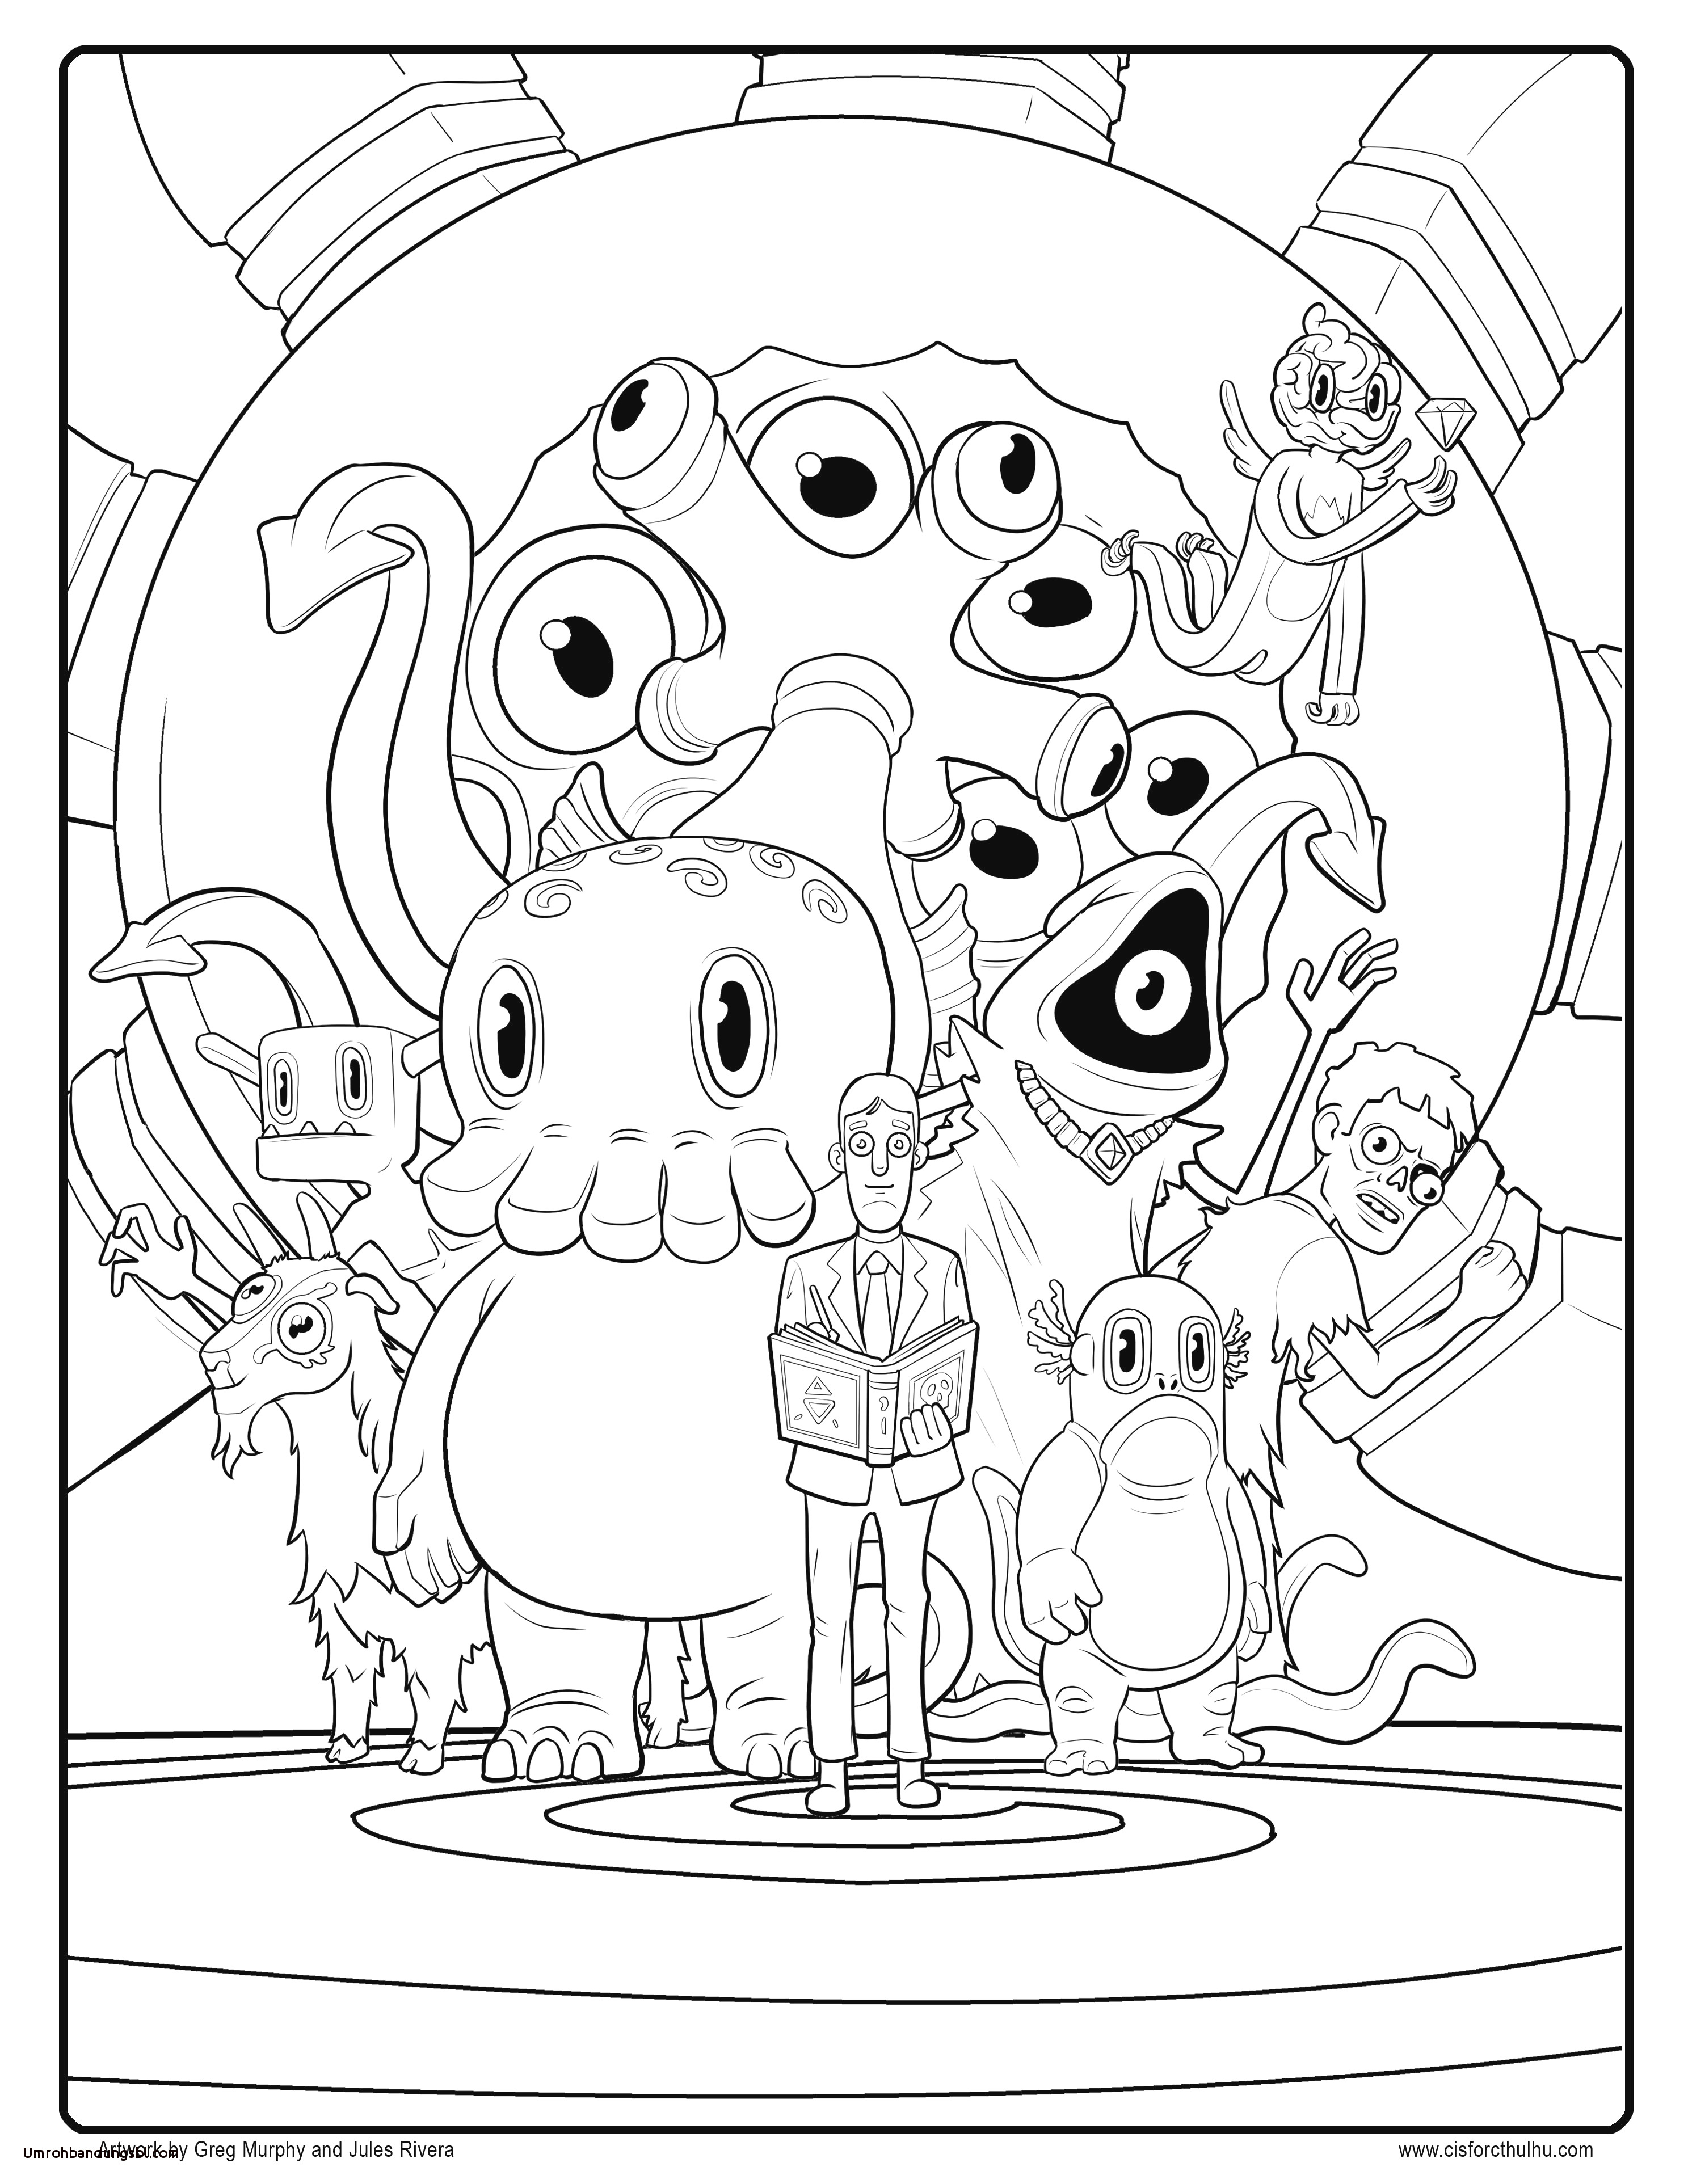 23 Coloring Pages For Third Graders Free Collection